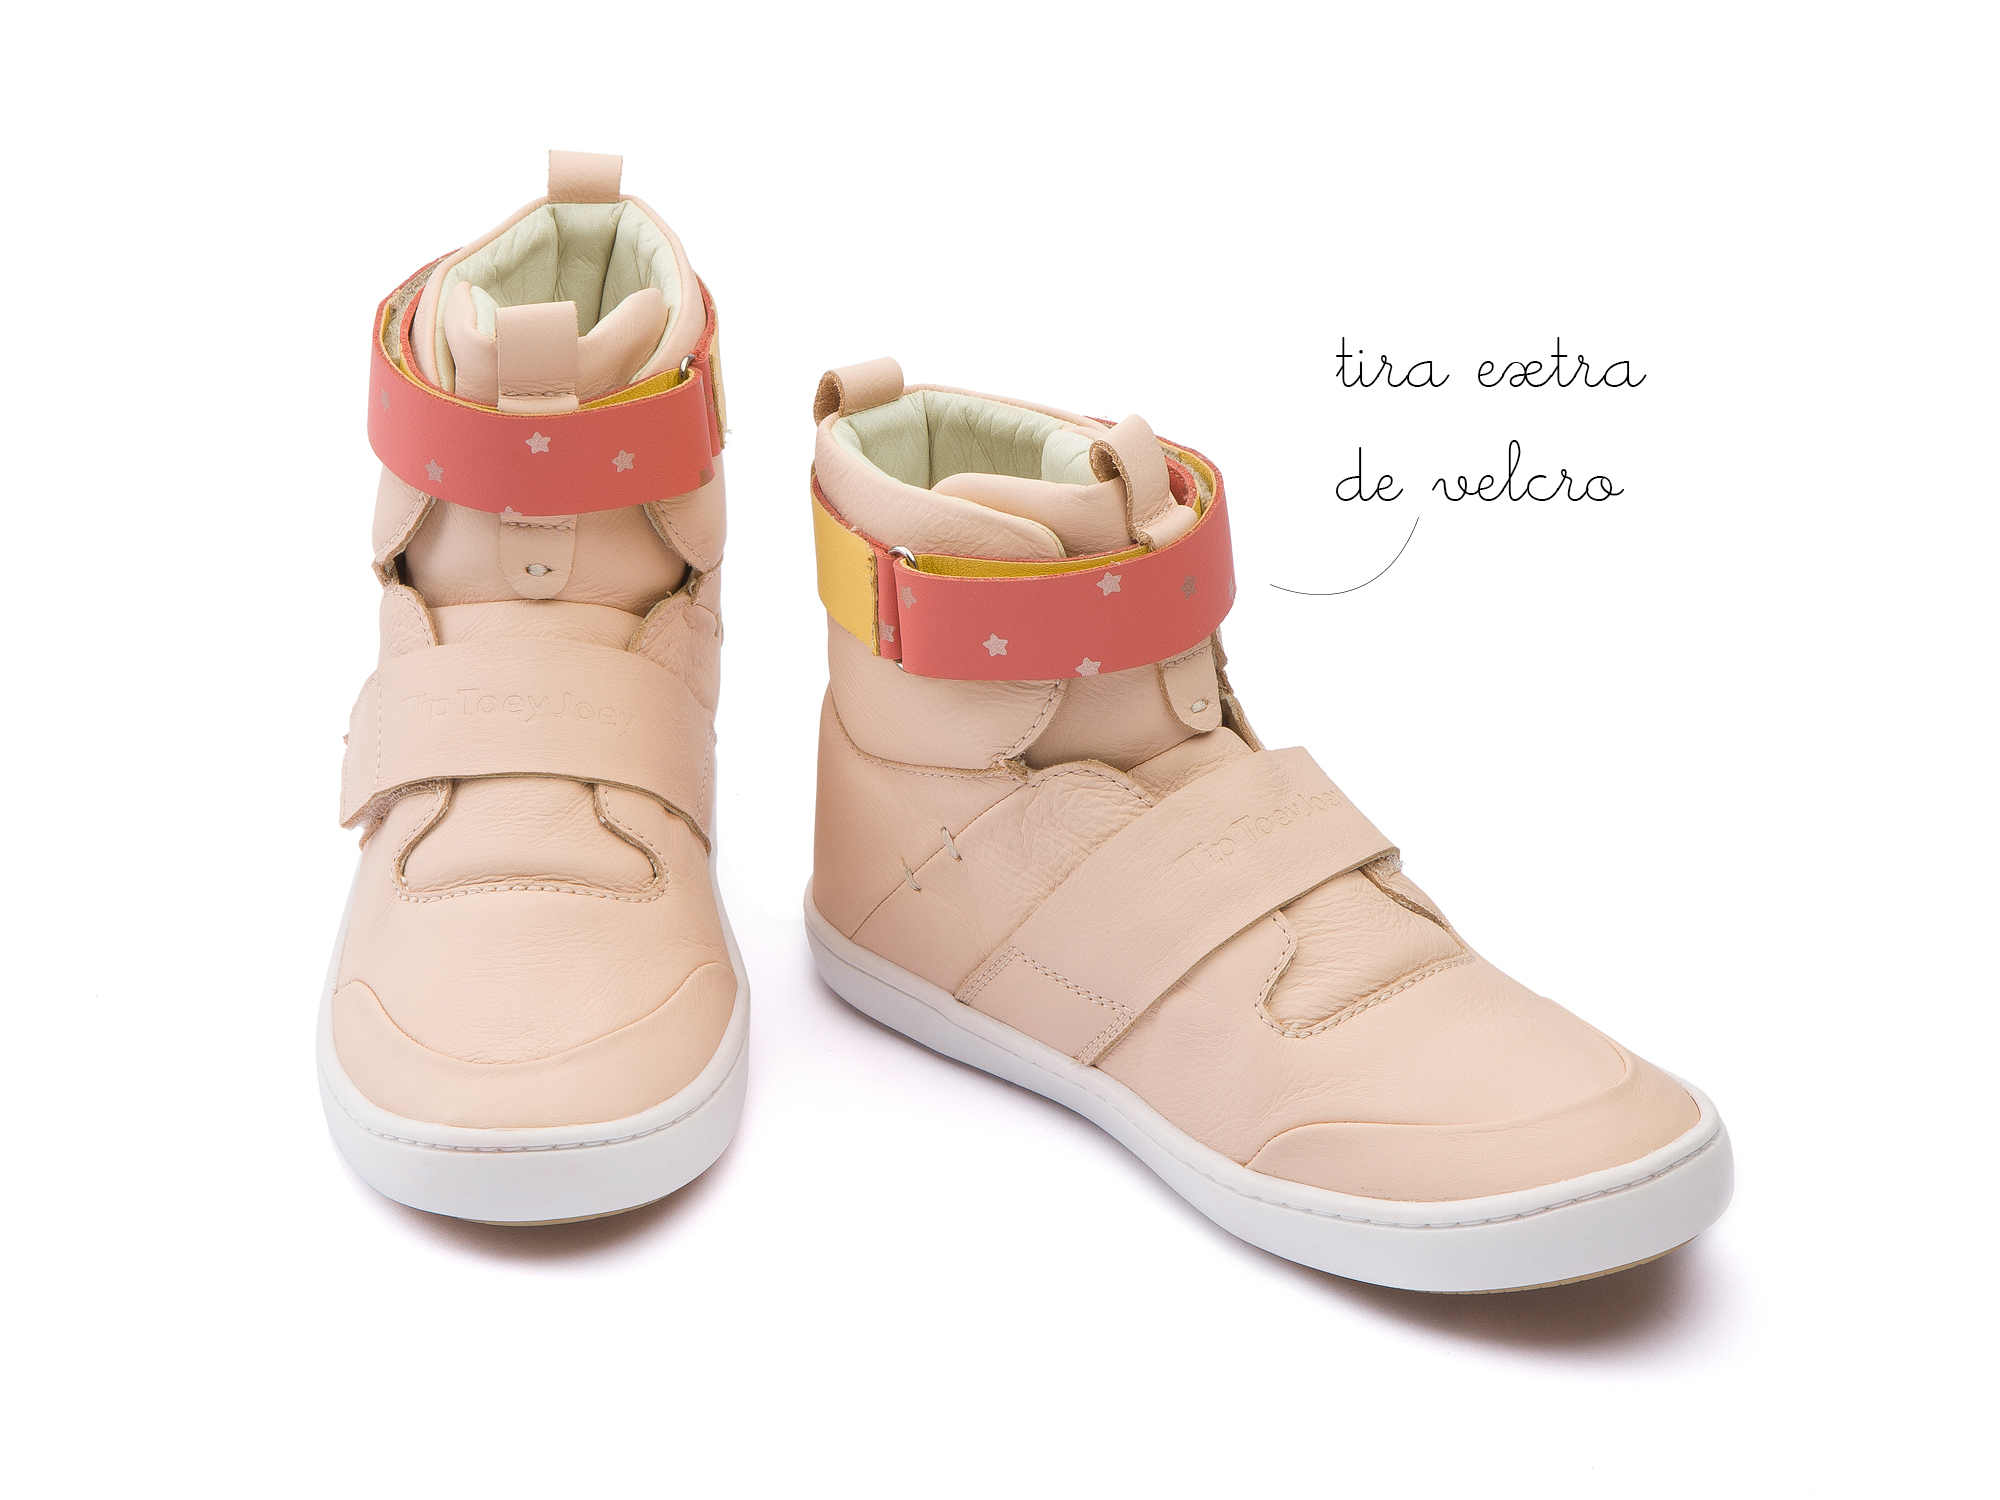 Bota Hoop Papaya Cream Junior 4 à 8 anos - 3